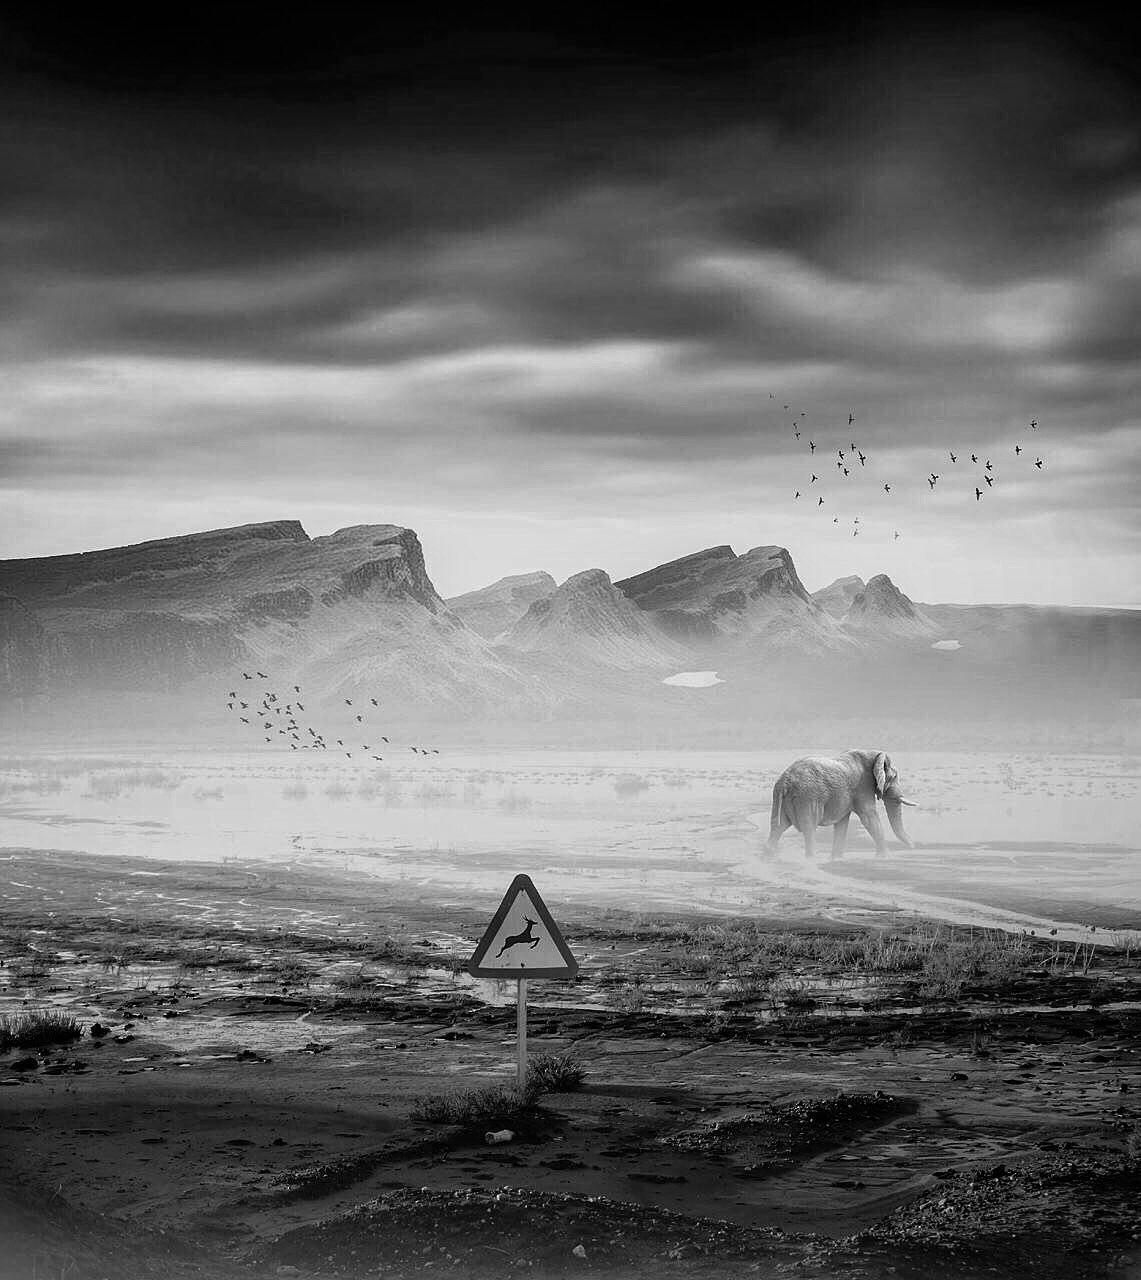 #Cross#breeding #fil #hossein_mehrzad #mehrzad_photo #fine_art #bnw #black_and_white #consept #photoshop #photomontage #mehrzad #art #dark #be_one_bw #bnw_one #bwworld_tr #bnw_rose #hossein_mehrzad #mehrzad_photo #top_bnw #bnw_of_our_world #iran_photograp, Hossein Mehrzad